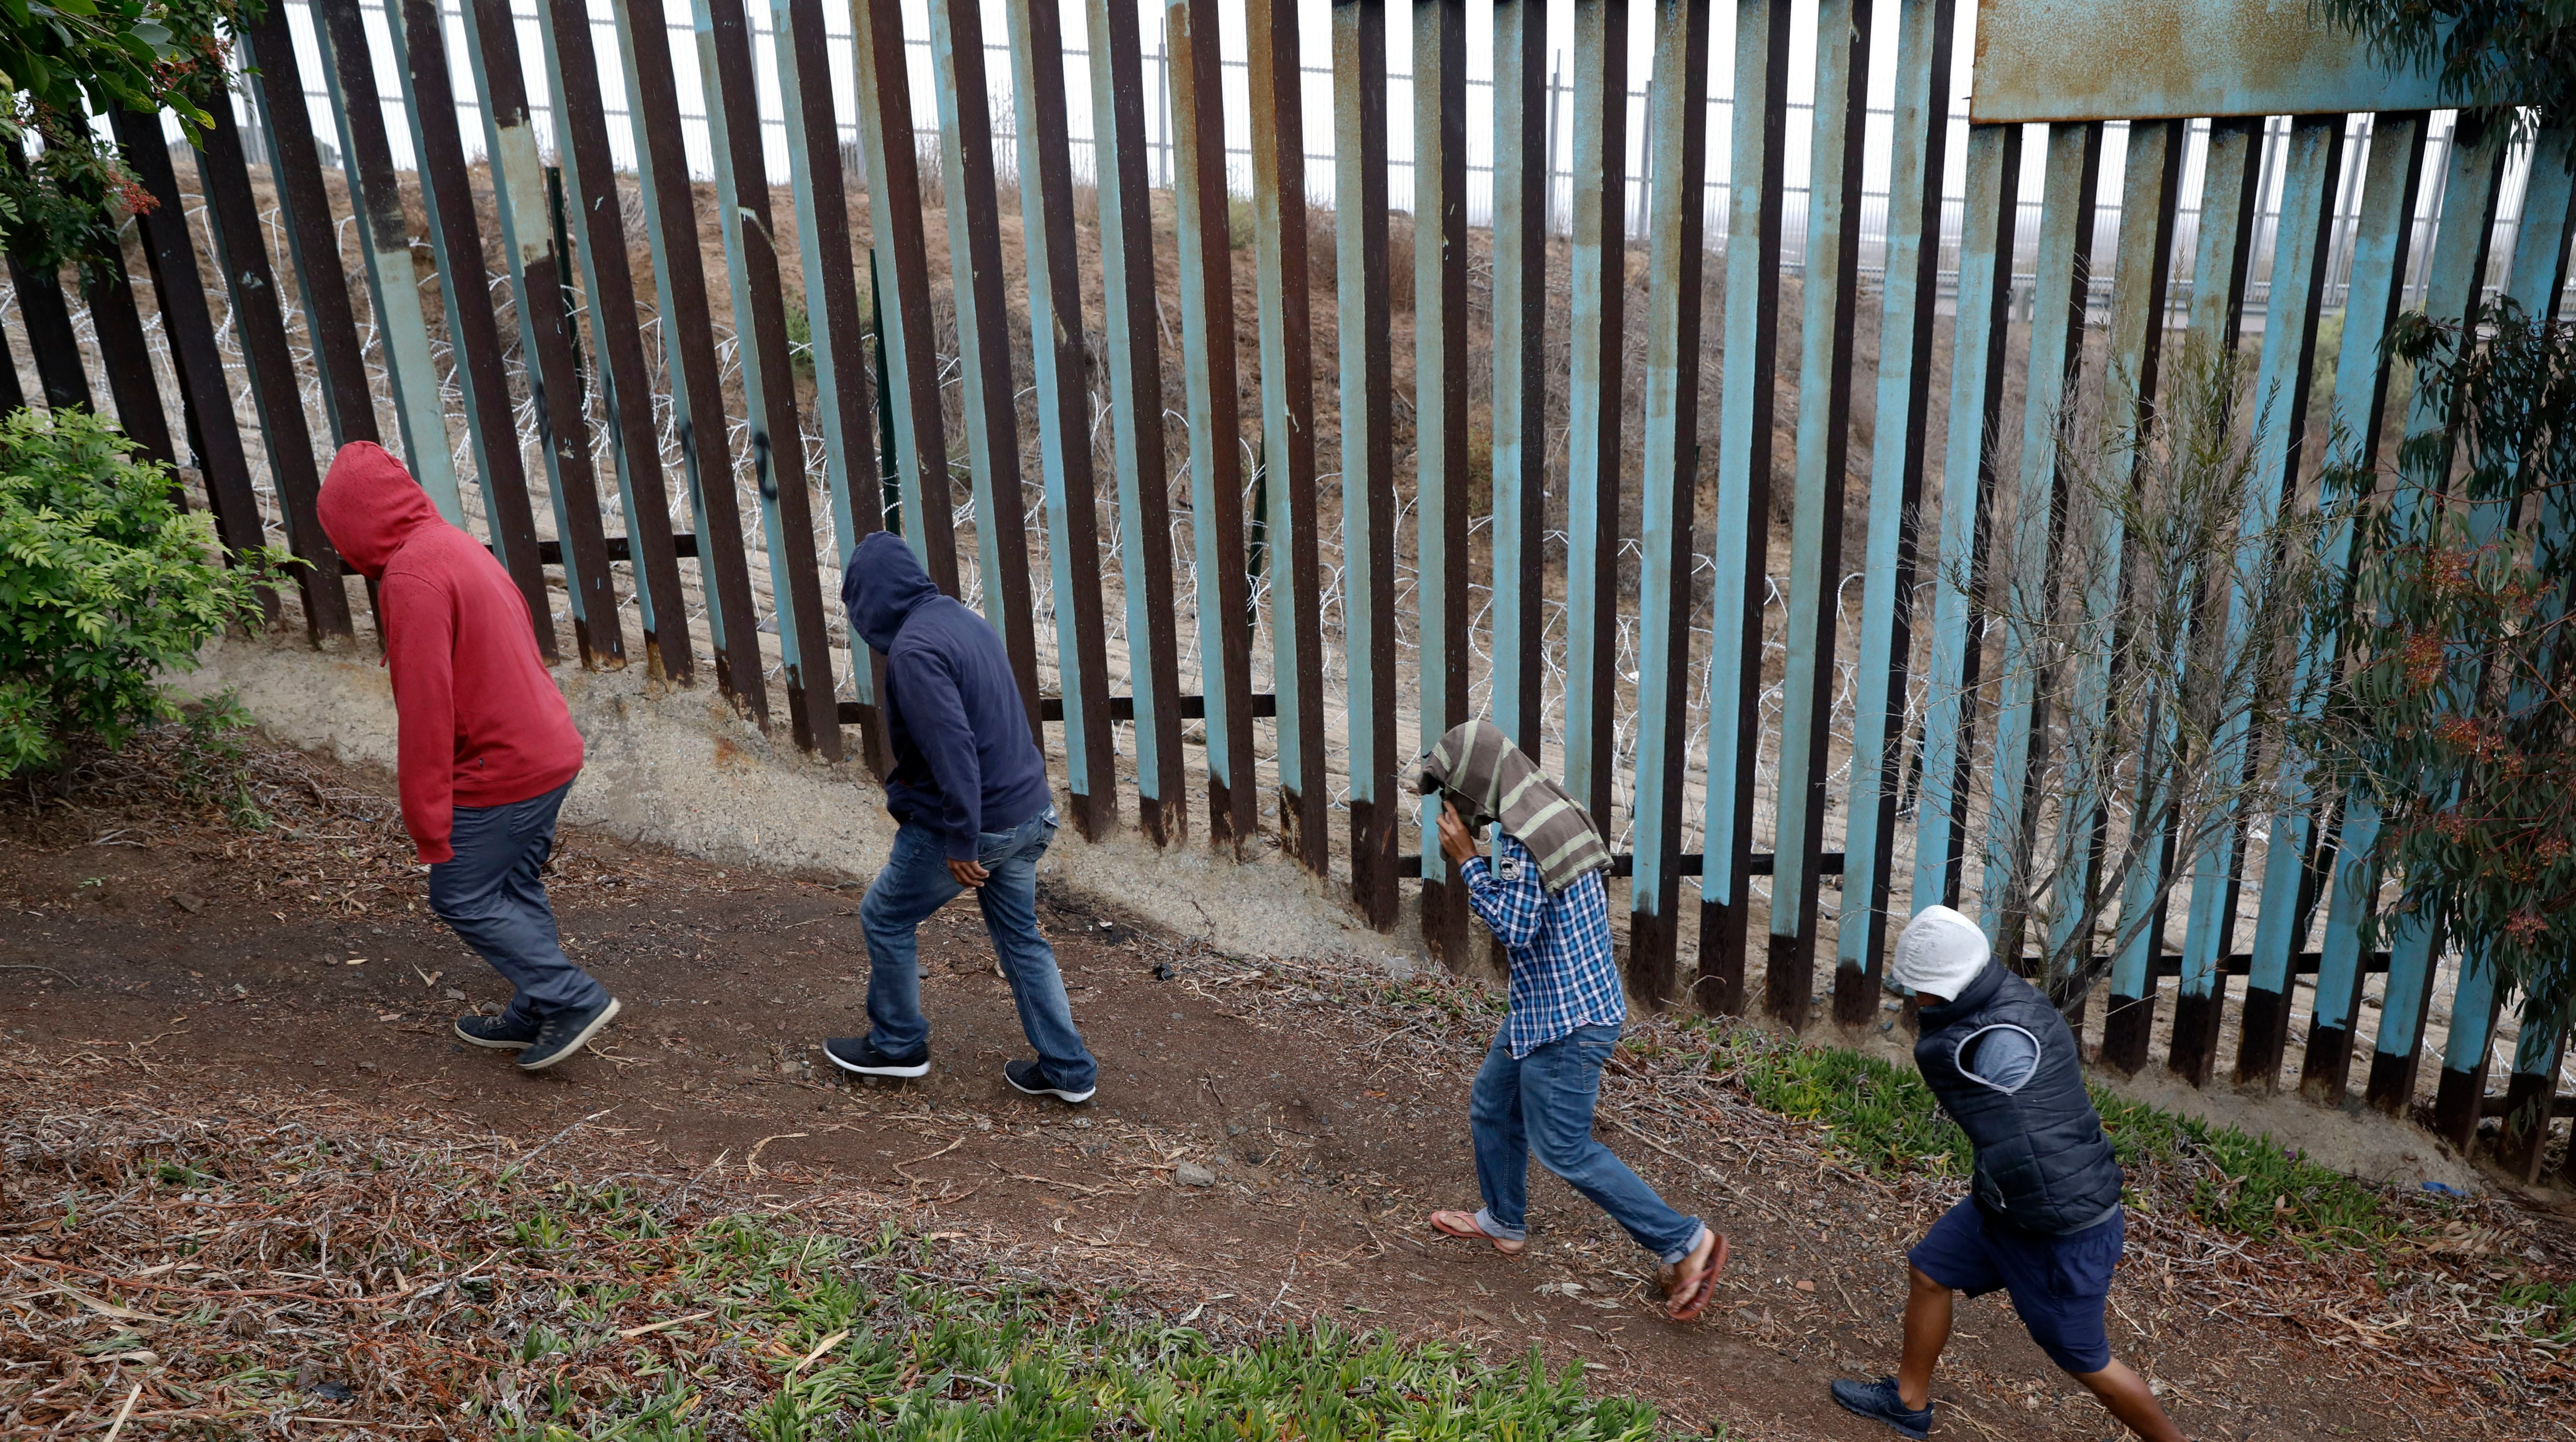 Central American migrants walk along the U.S. border fence looking for places they might be able to cross, in Playas de Tijuana, Mexico, Wednesday, Dec. 5, 2018.